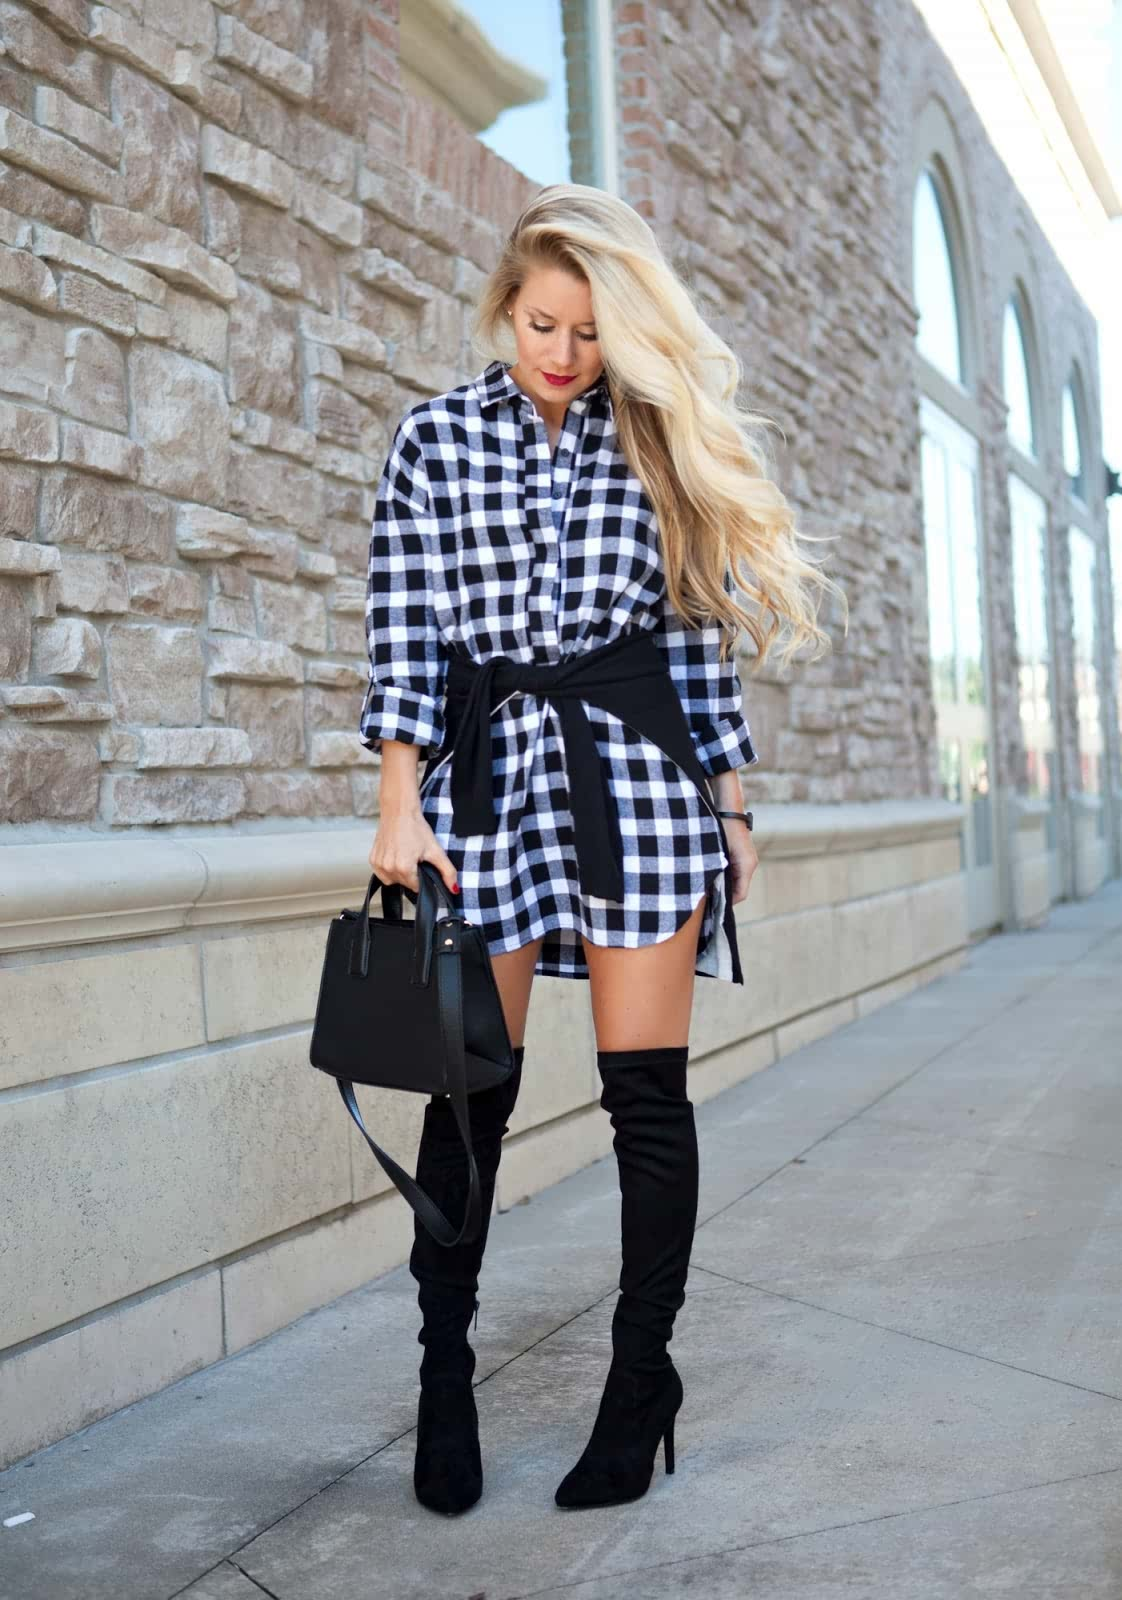 Thigh high boots outfit ideas plaid pinafore dresses How-to and What to Wear with Thigh High Boots